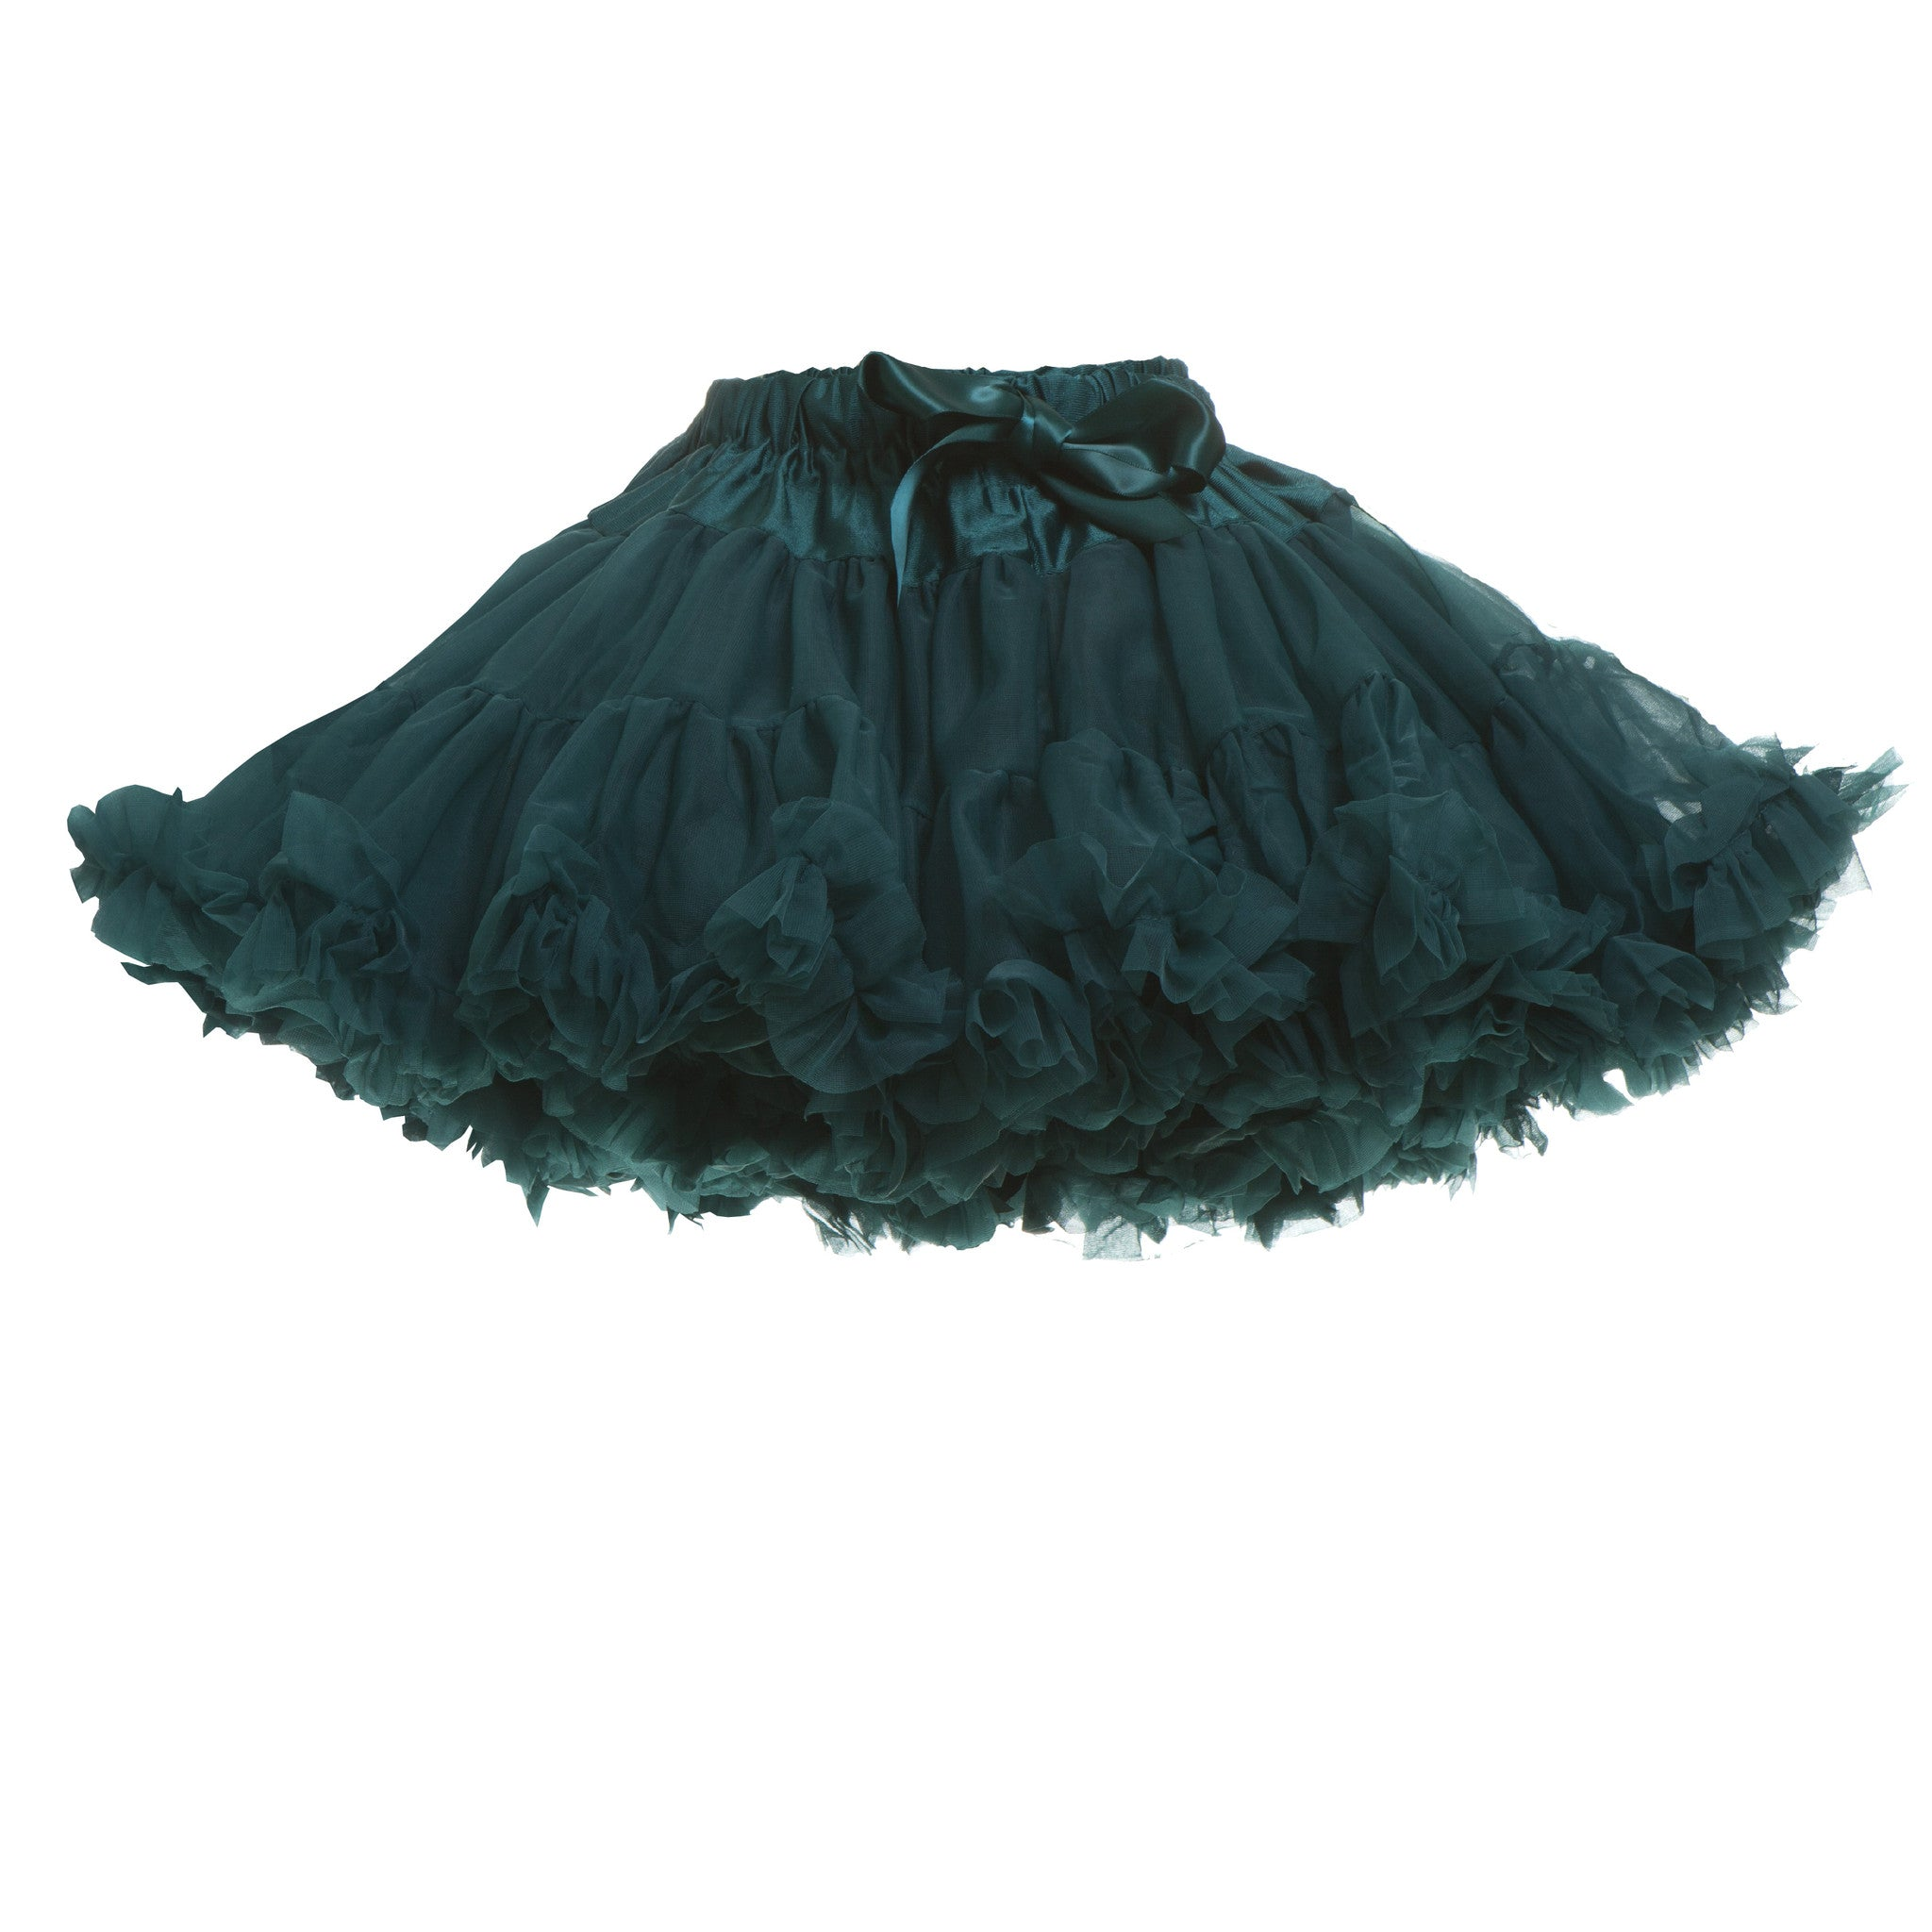 Children's Petticoat - Emerald Green - Palava